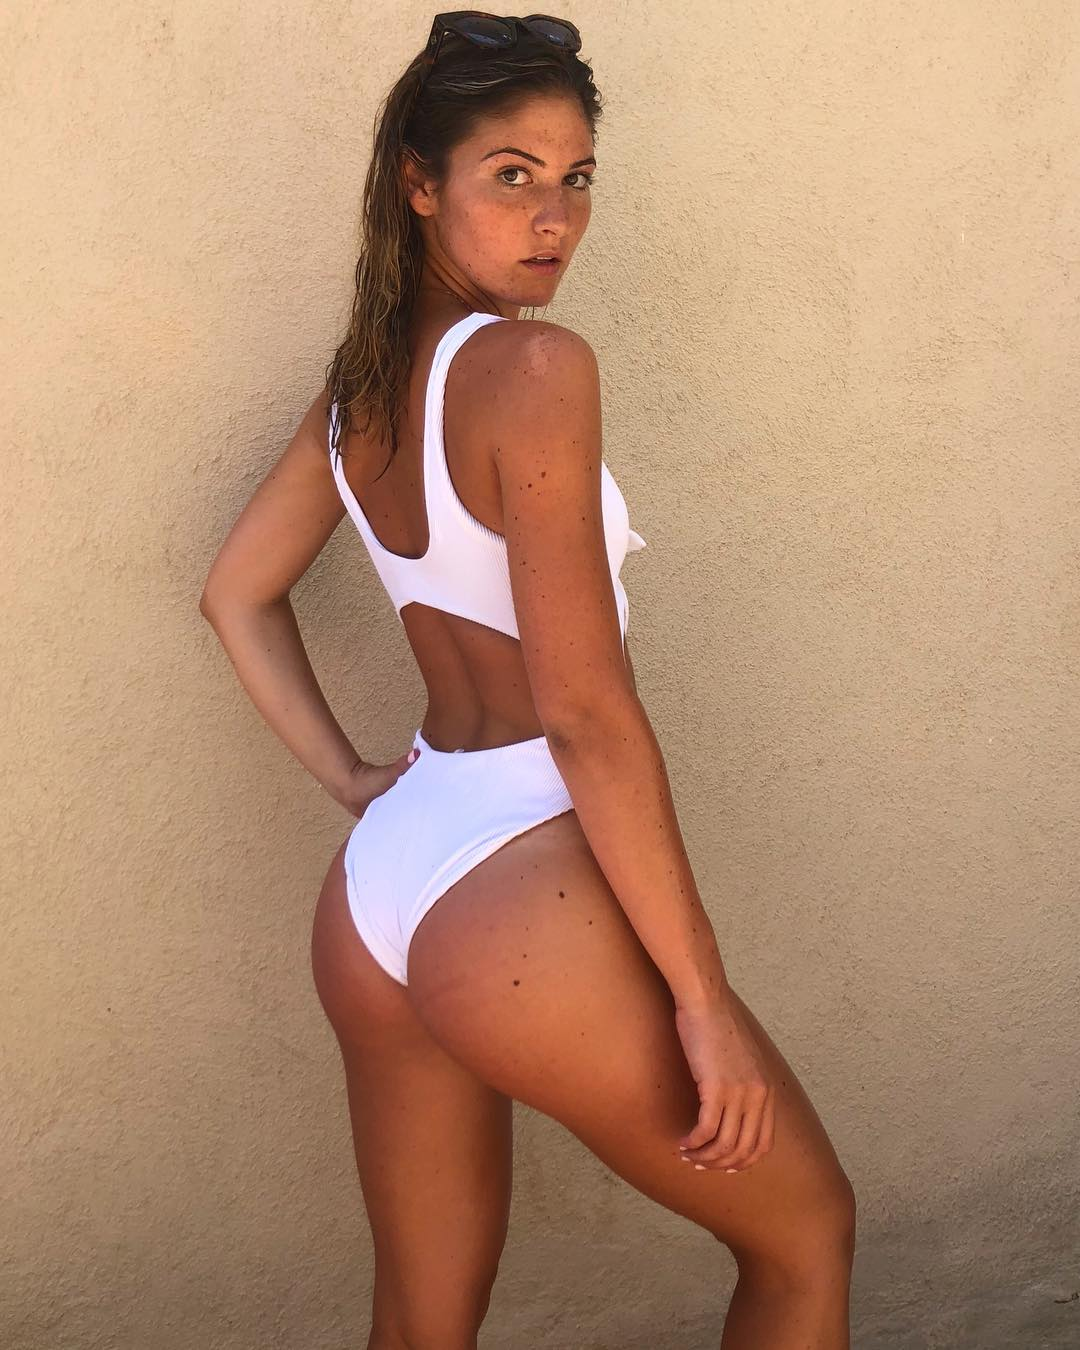 shauna sexton hot booty pictures